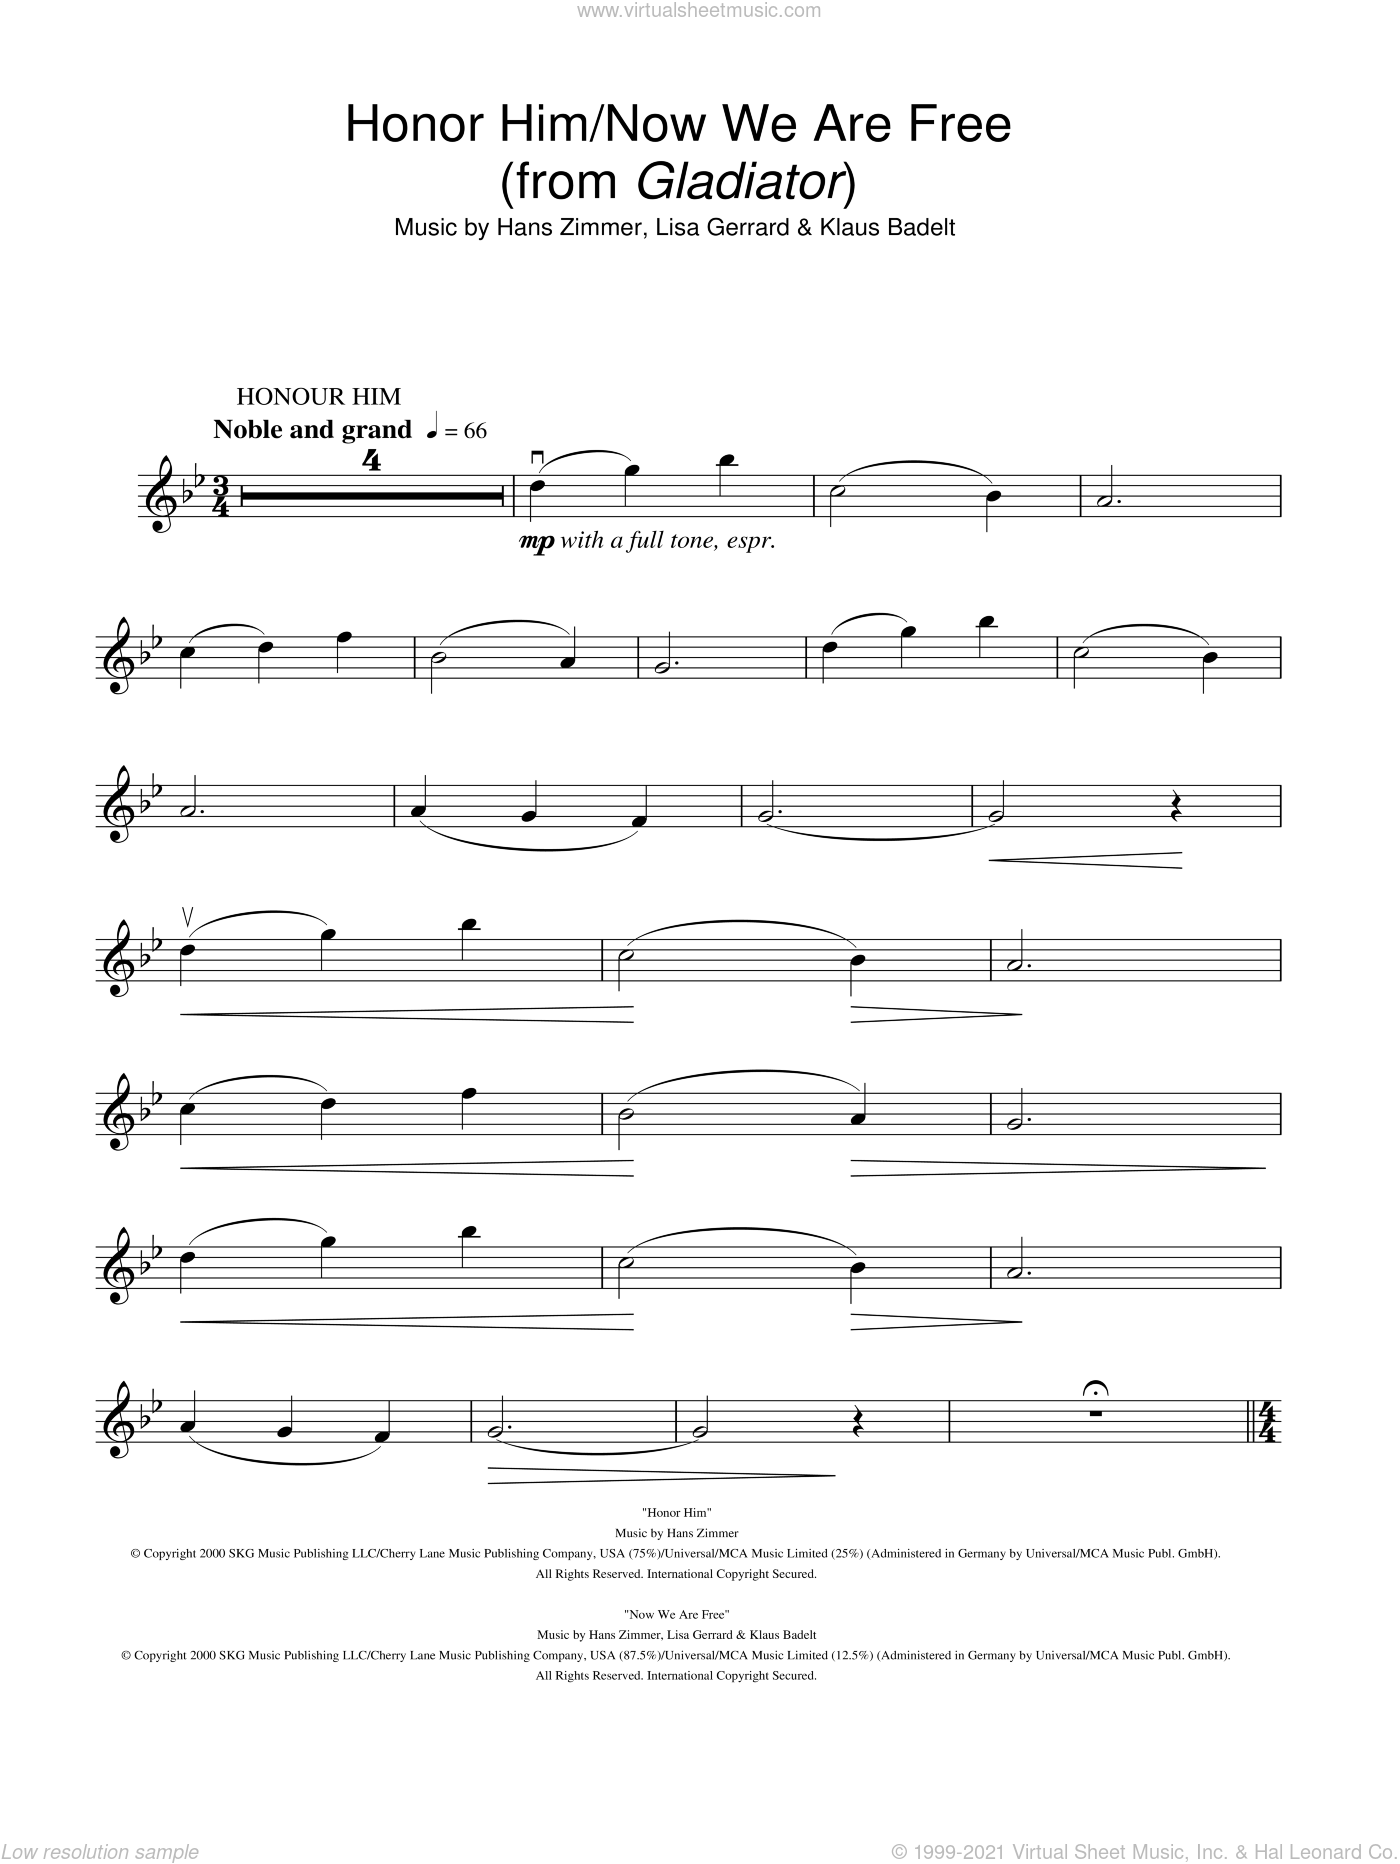 Honor Him/Now We Are Free (from Gladiator) sheet music for violin solo by Lisa Gerrard, Hans Zimmer and Klaus Badelt. Score Image Preview.